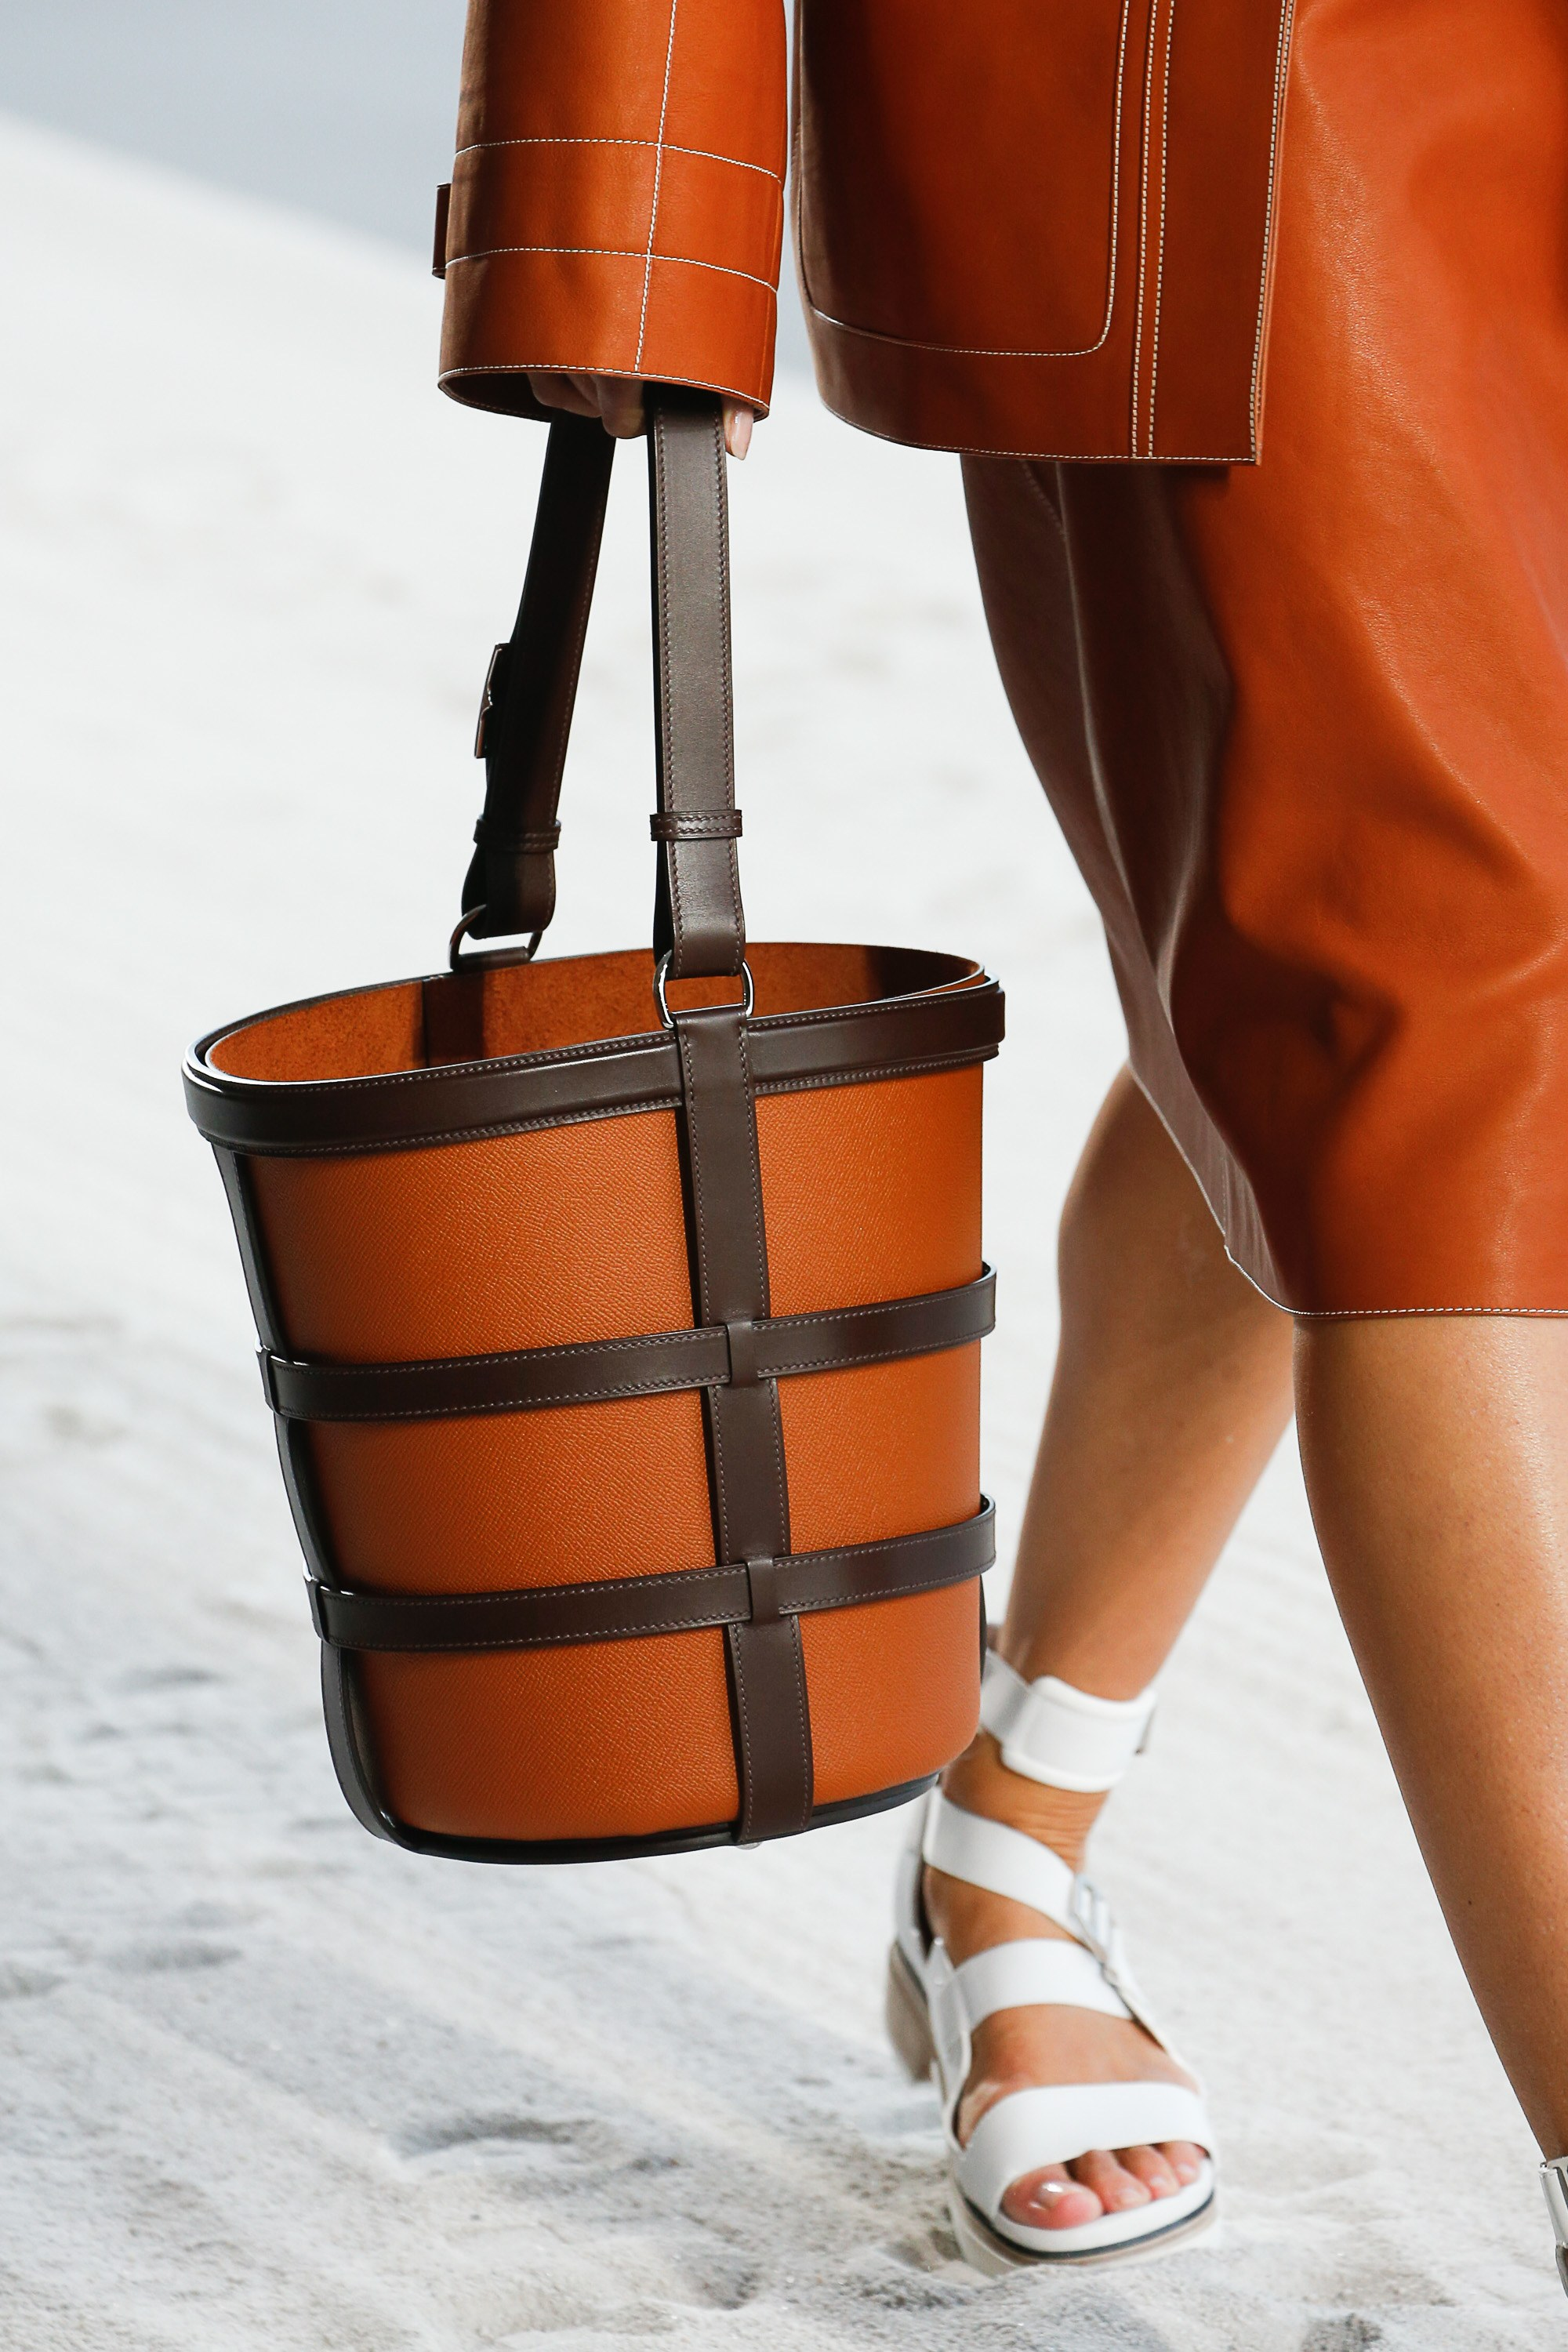 Hermes SpringSummer 2019 Runway Bag Collection  Spotted Fashion